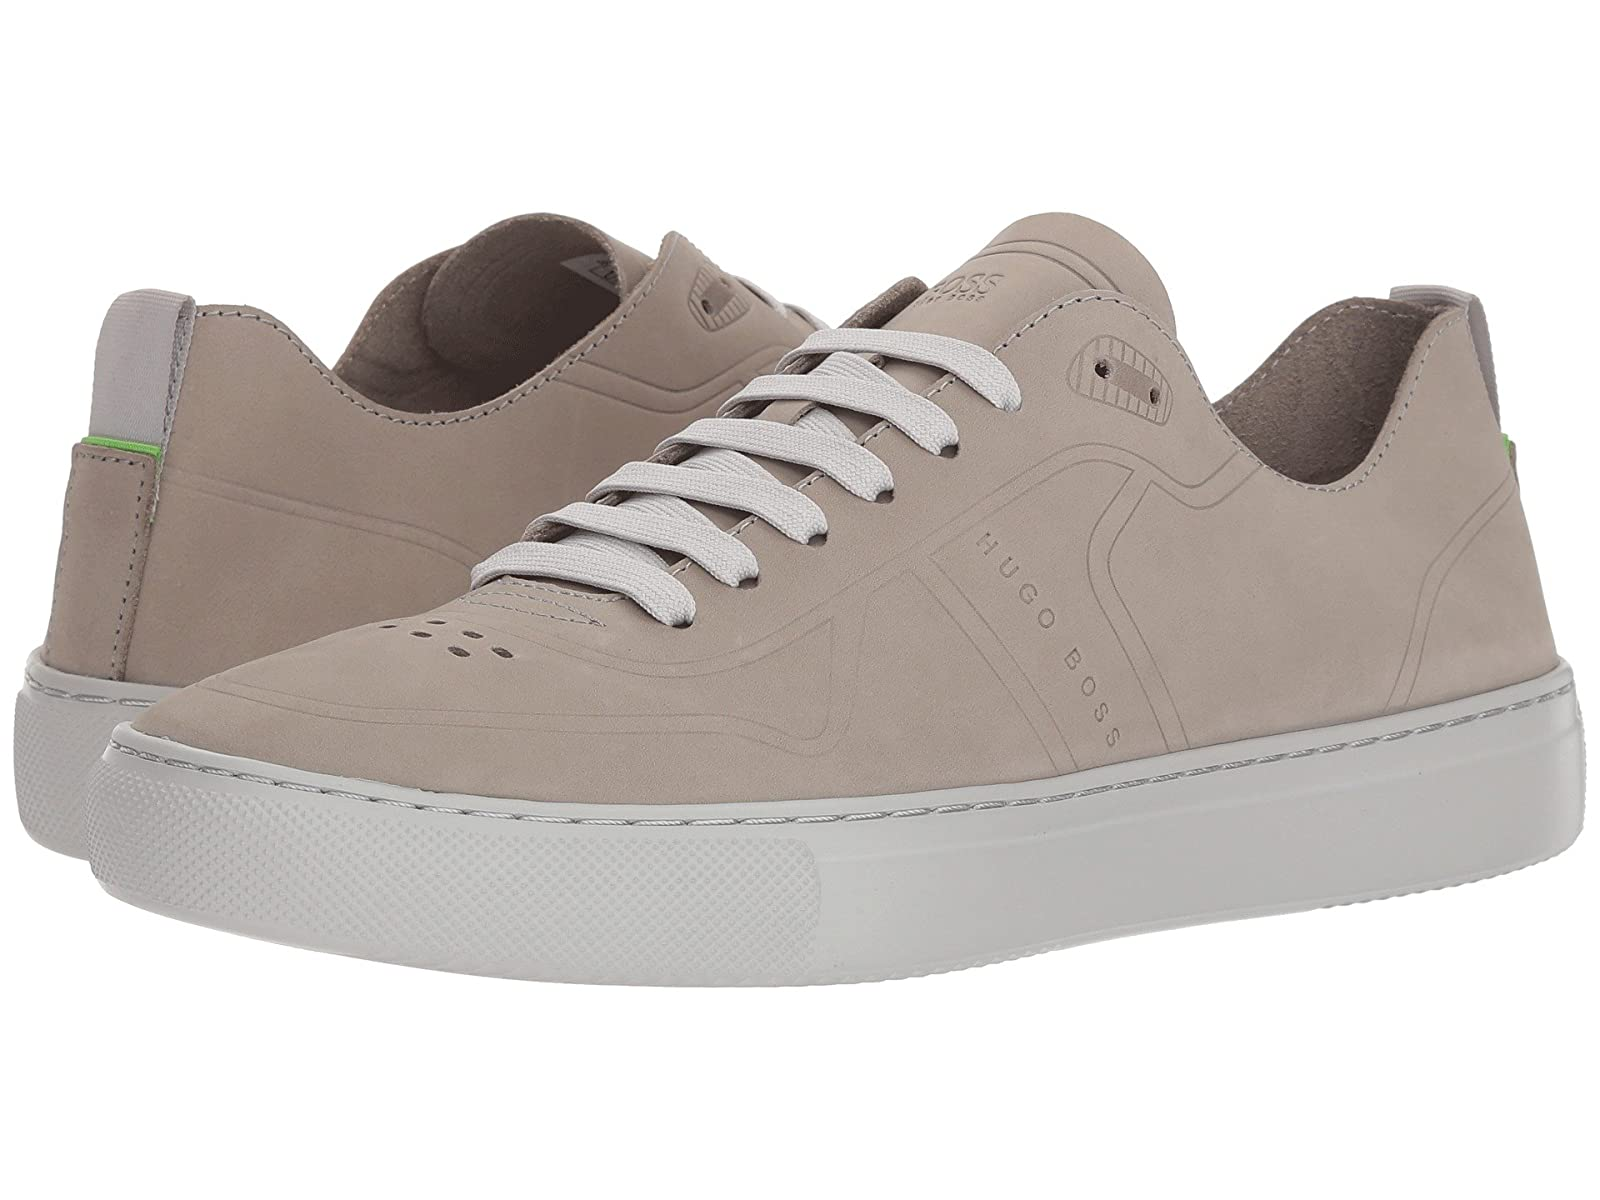 BOSS Hugo Boss Enlight Tennis By Boss GreenAtmospheric grades have affordable shoes